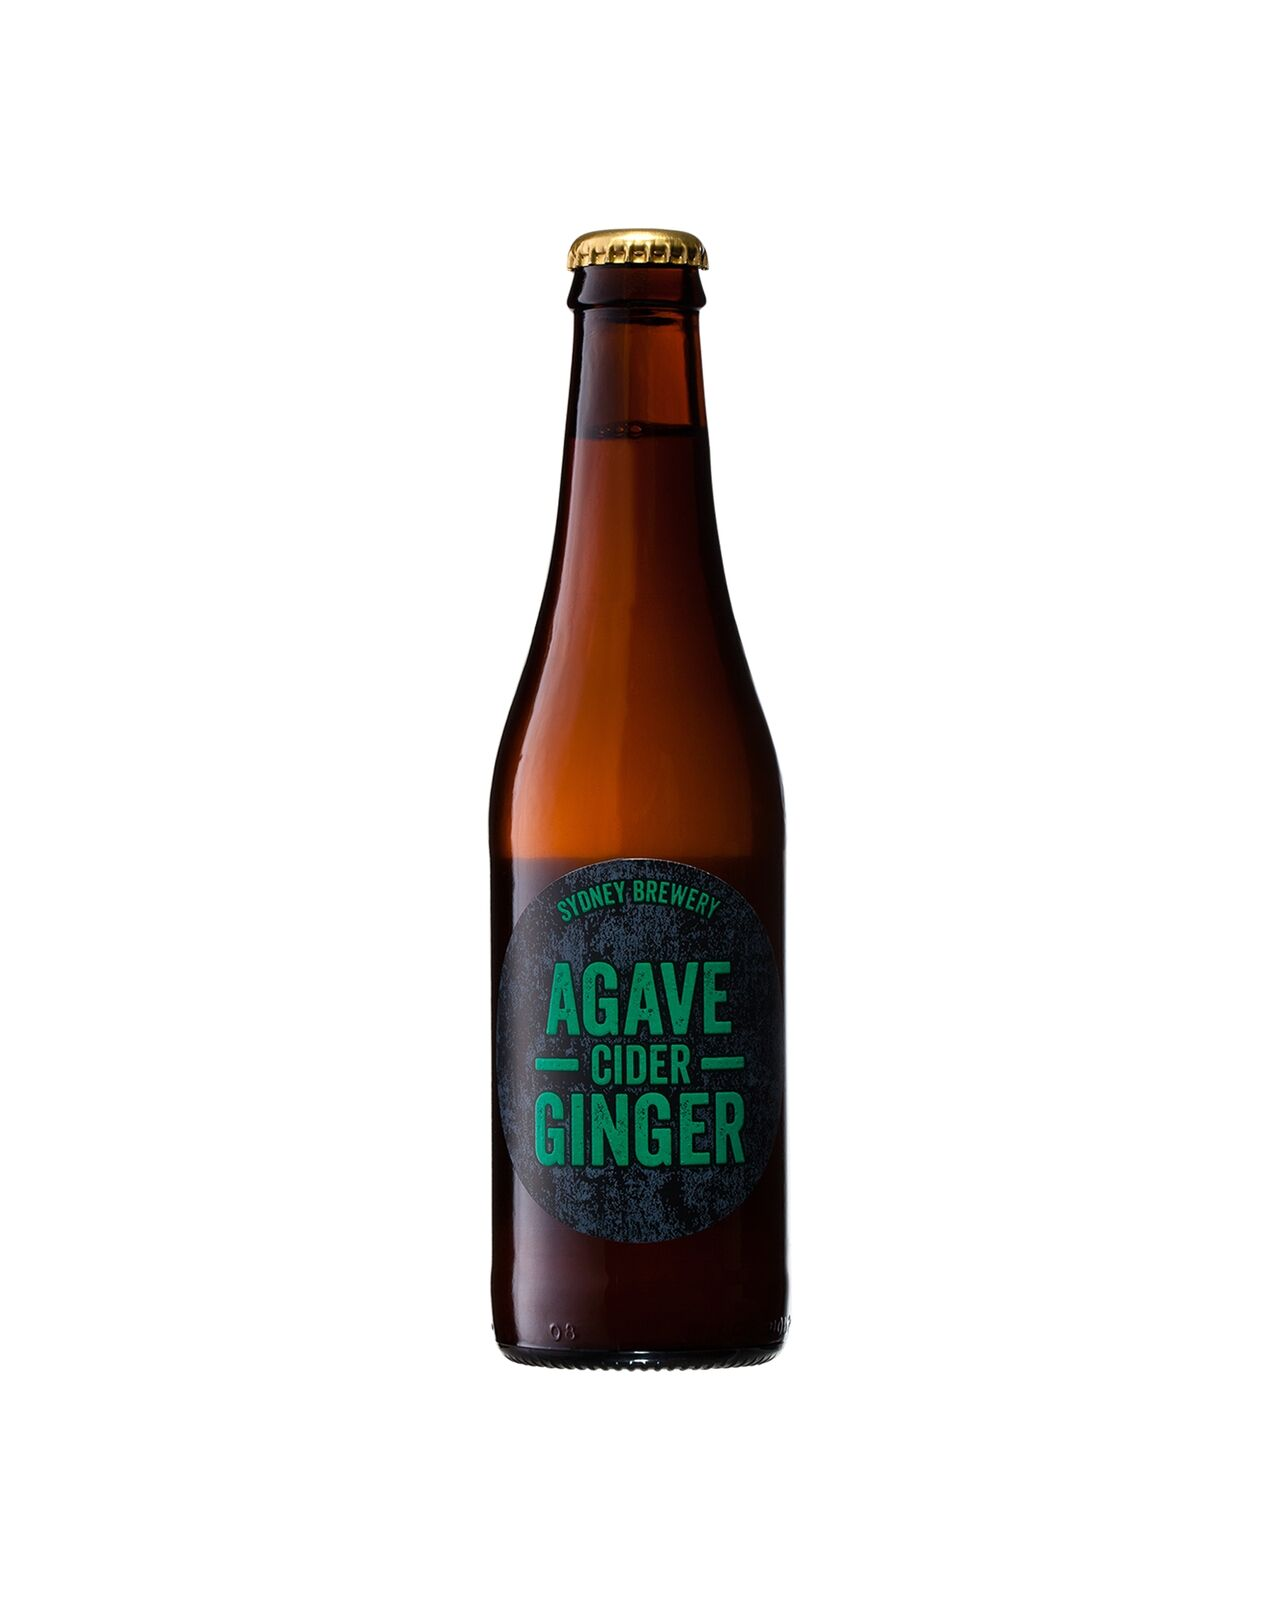 Fermented with Sydney Cider, organic agave and ginger, this ground breaking Cide